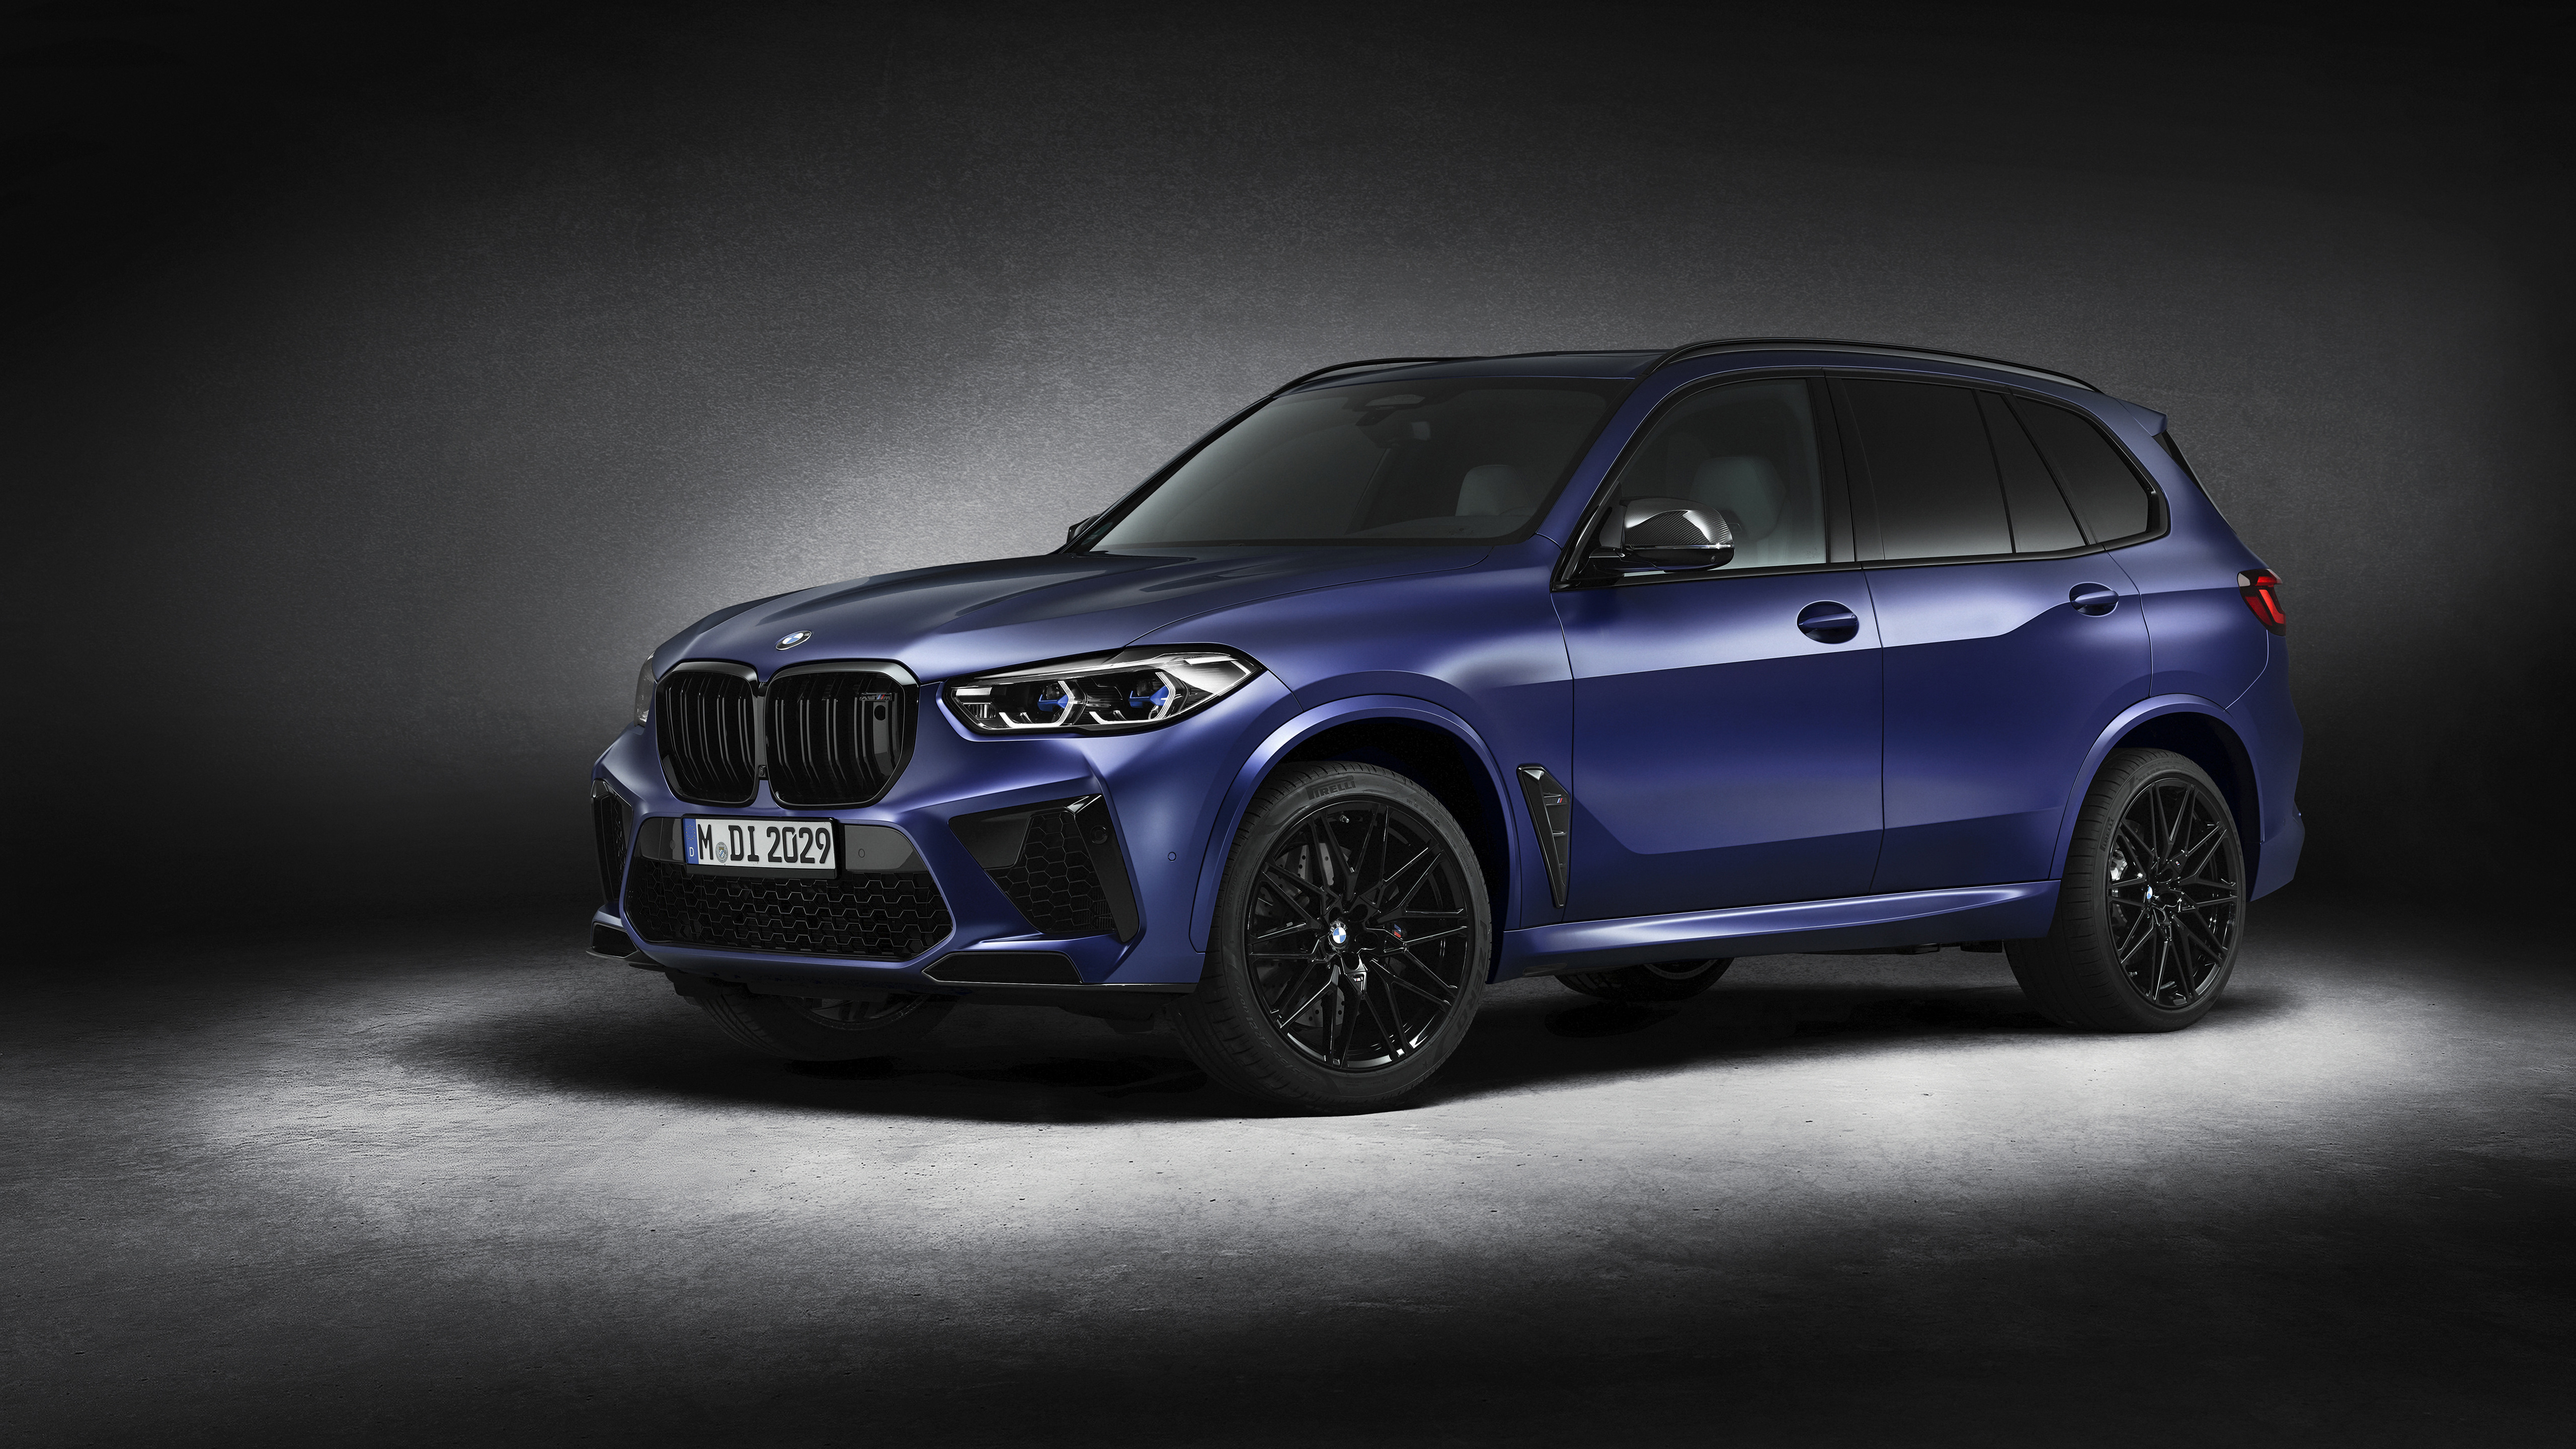 bmw x5 m competition first edition 2021 5k wallpaper | hd